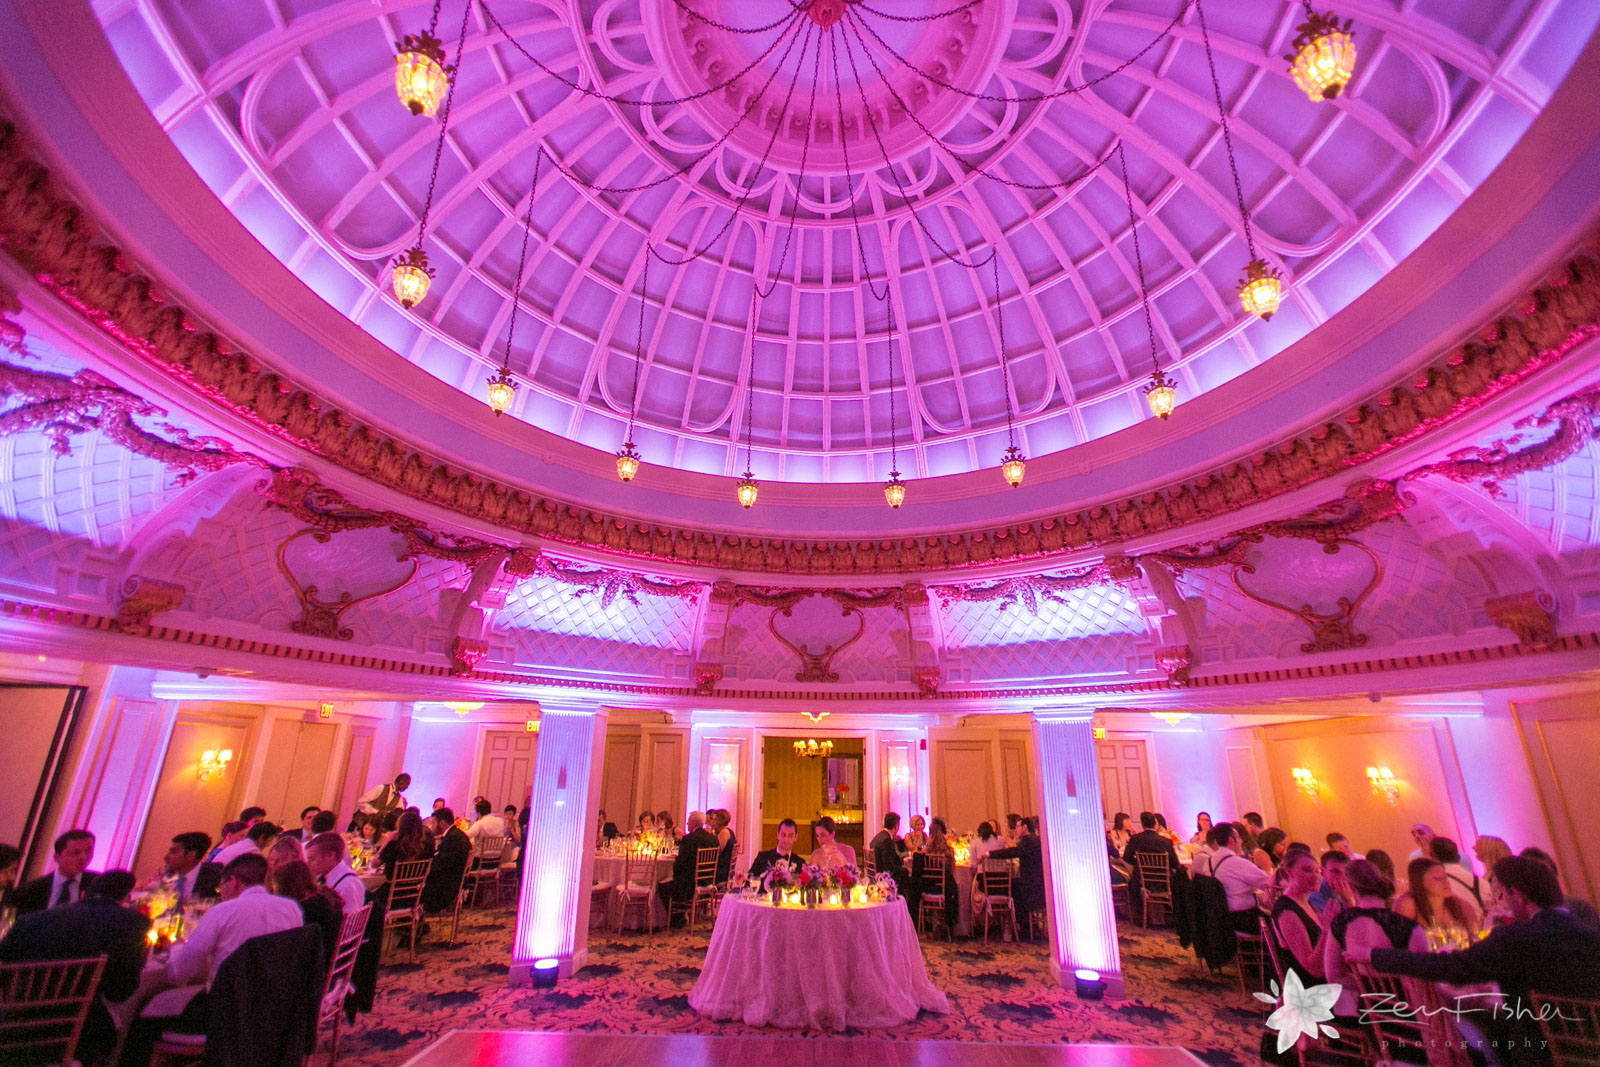 Epic wide shot of pink lights and elegant decor at the reception hall at the Lenox hotel.